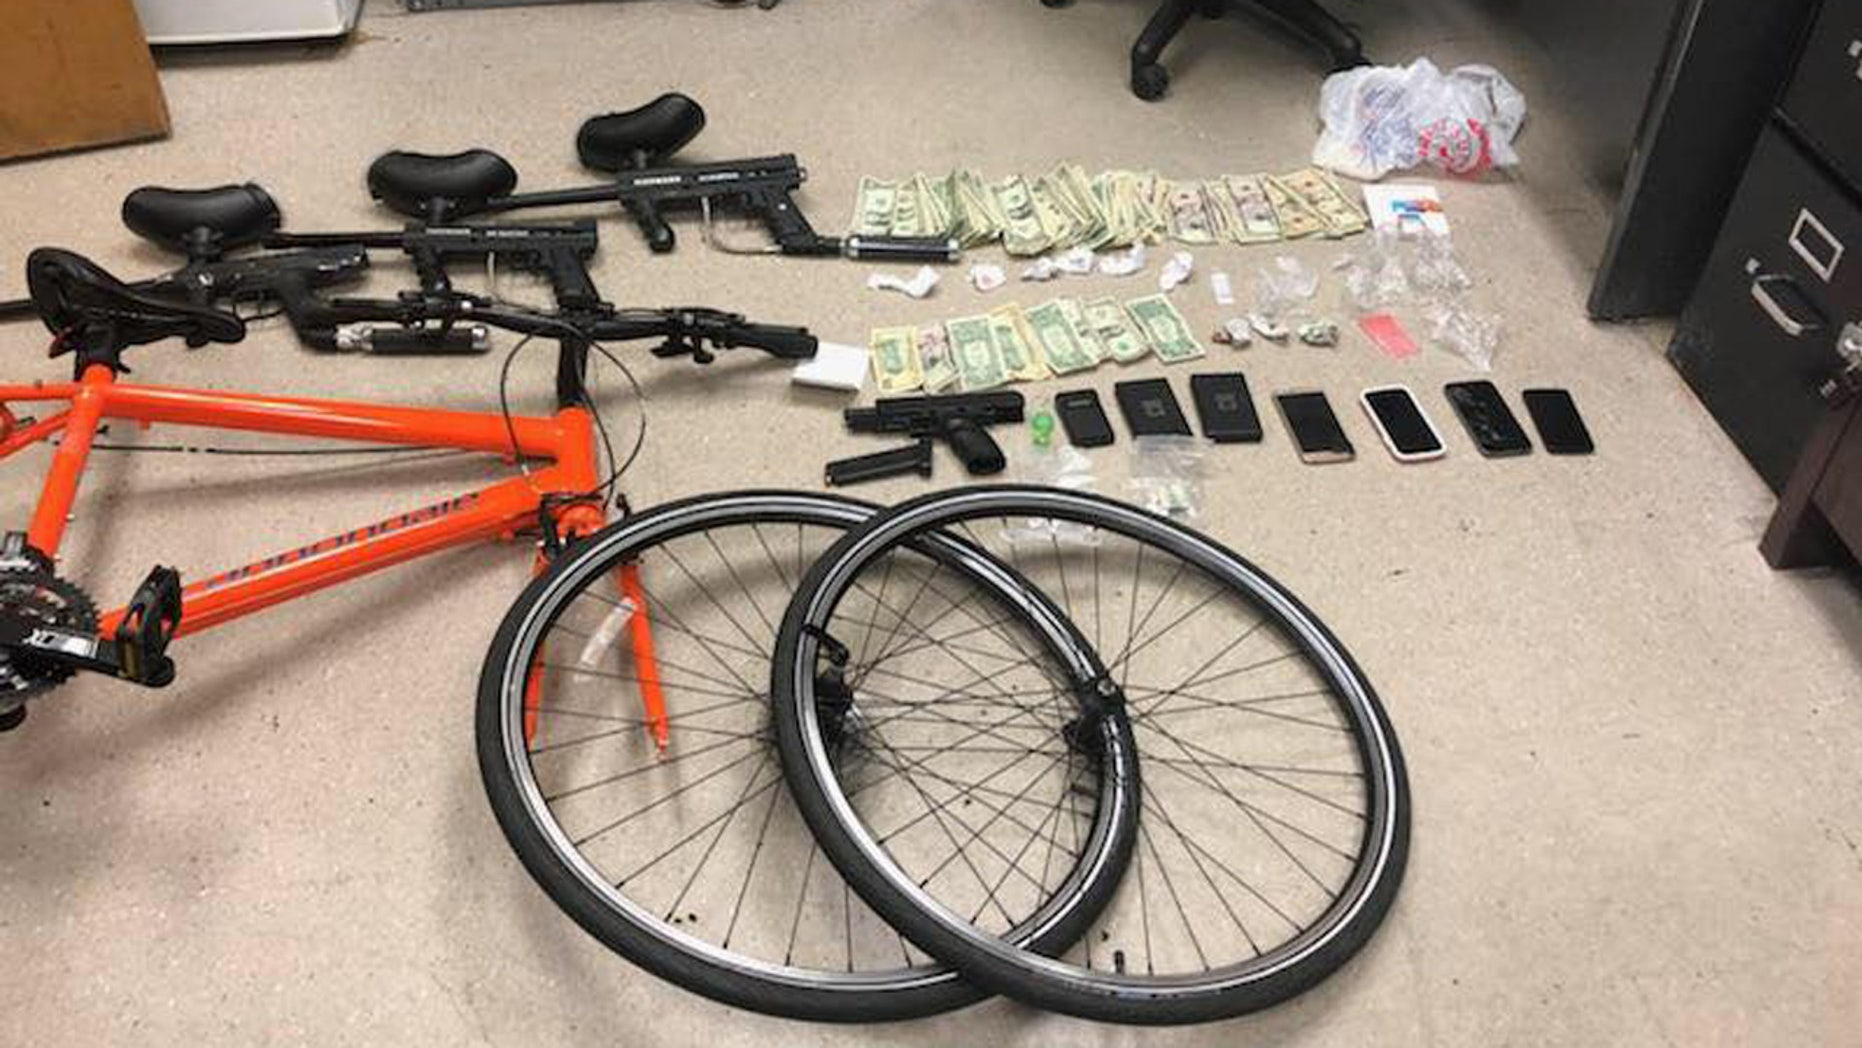 Asbury Park Police said they arrested three people Friday on drug and weapons charges after executing a search warrant over a reported threat.